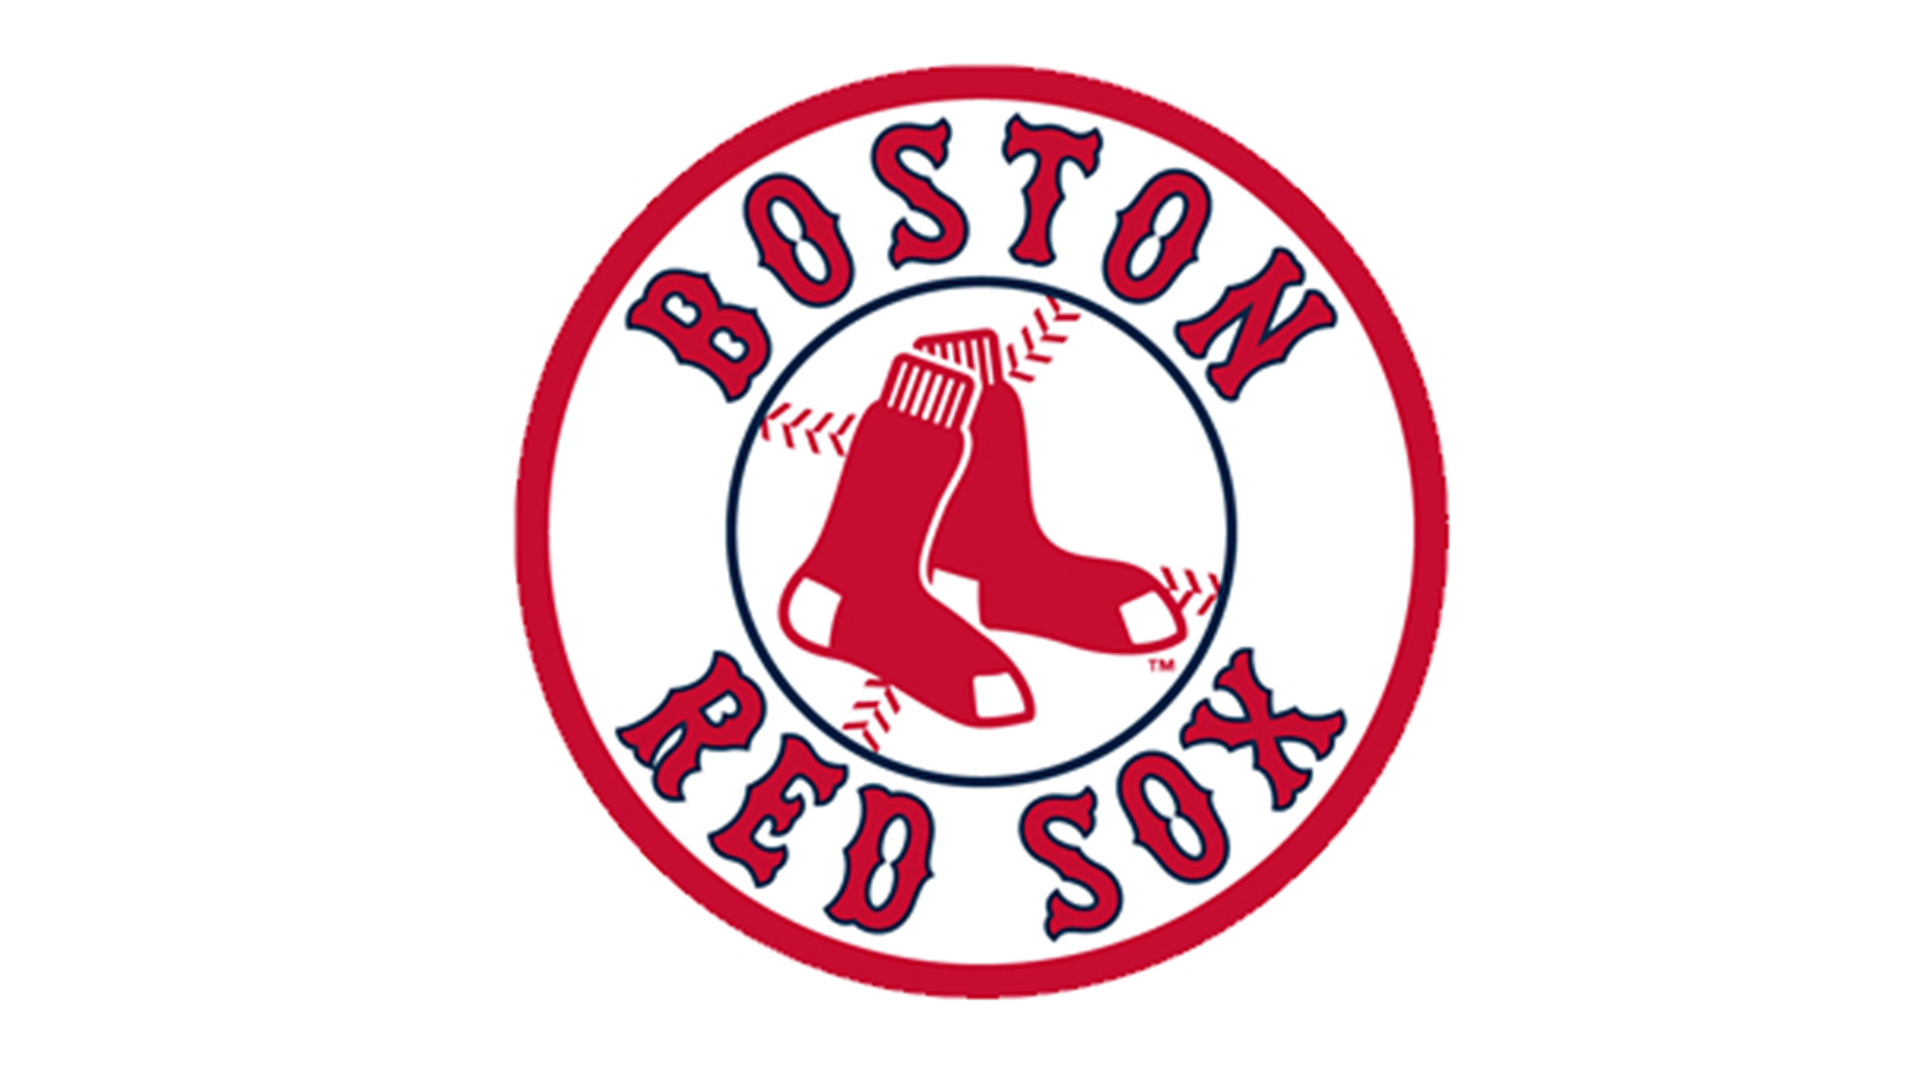 Boston Red Sox Backgrounds Free Download | HD Wallpapers ...